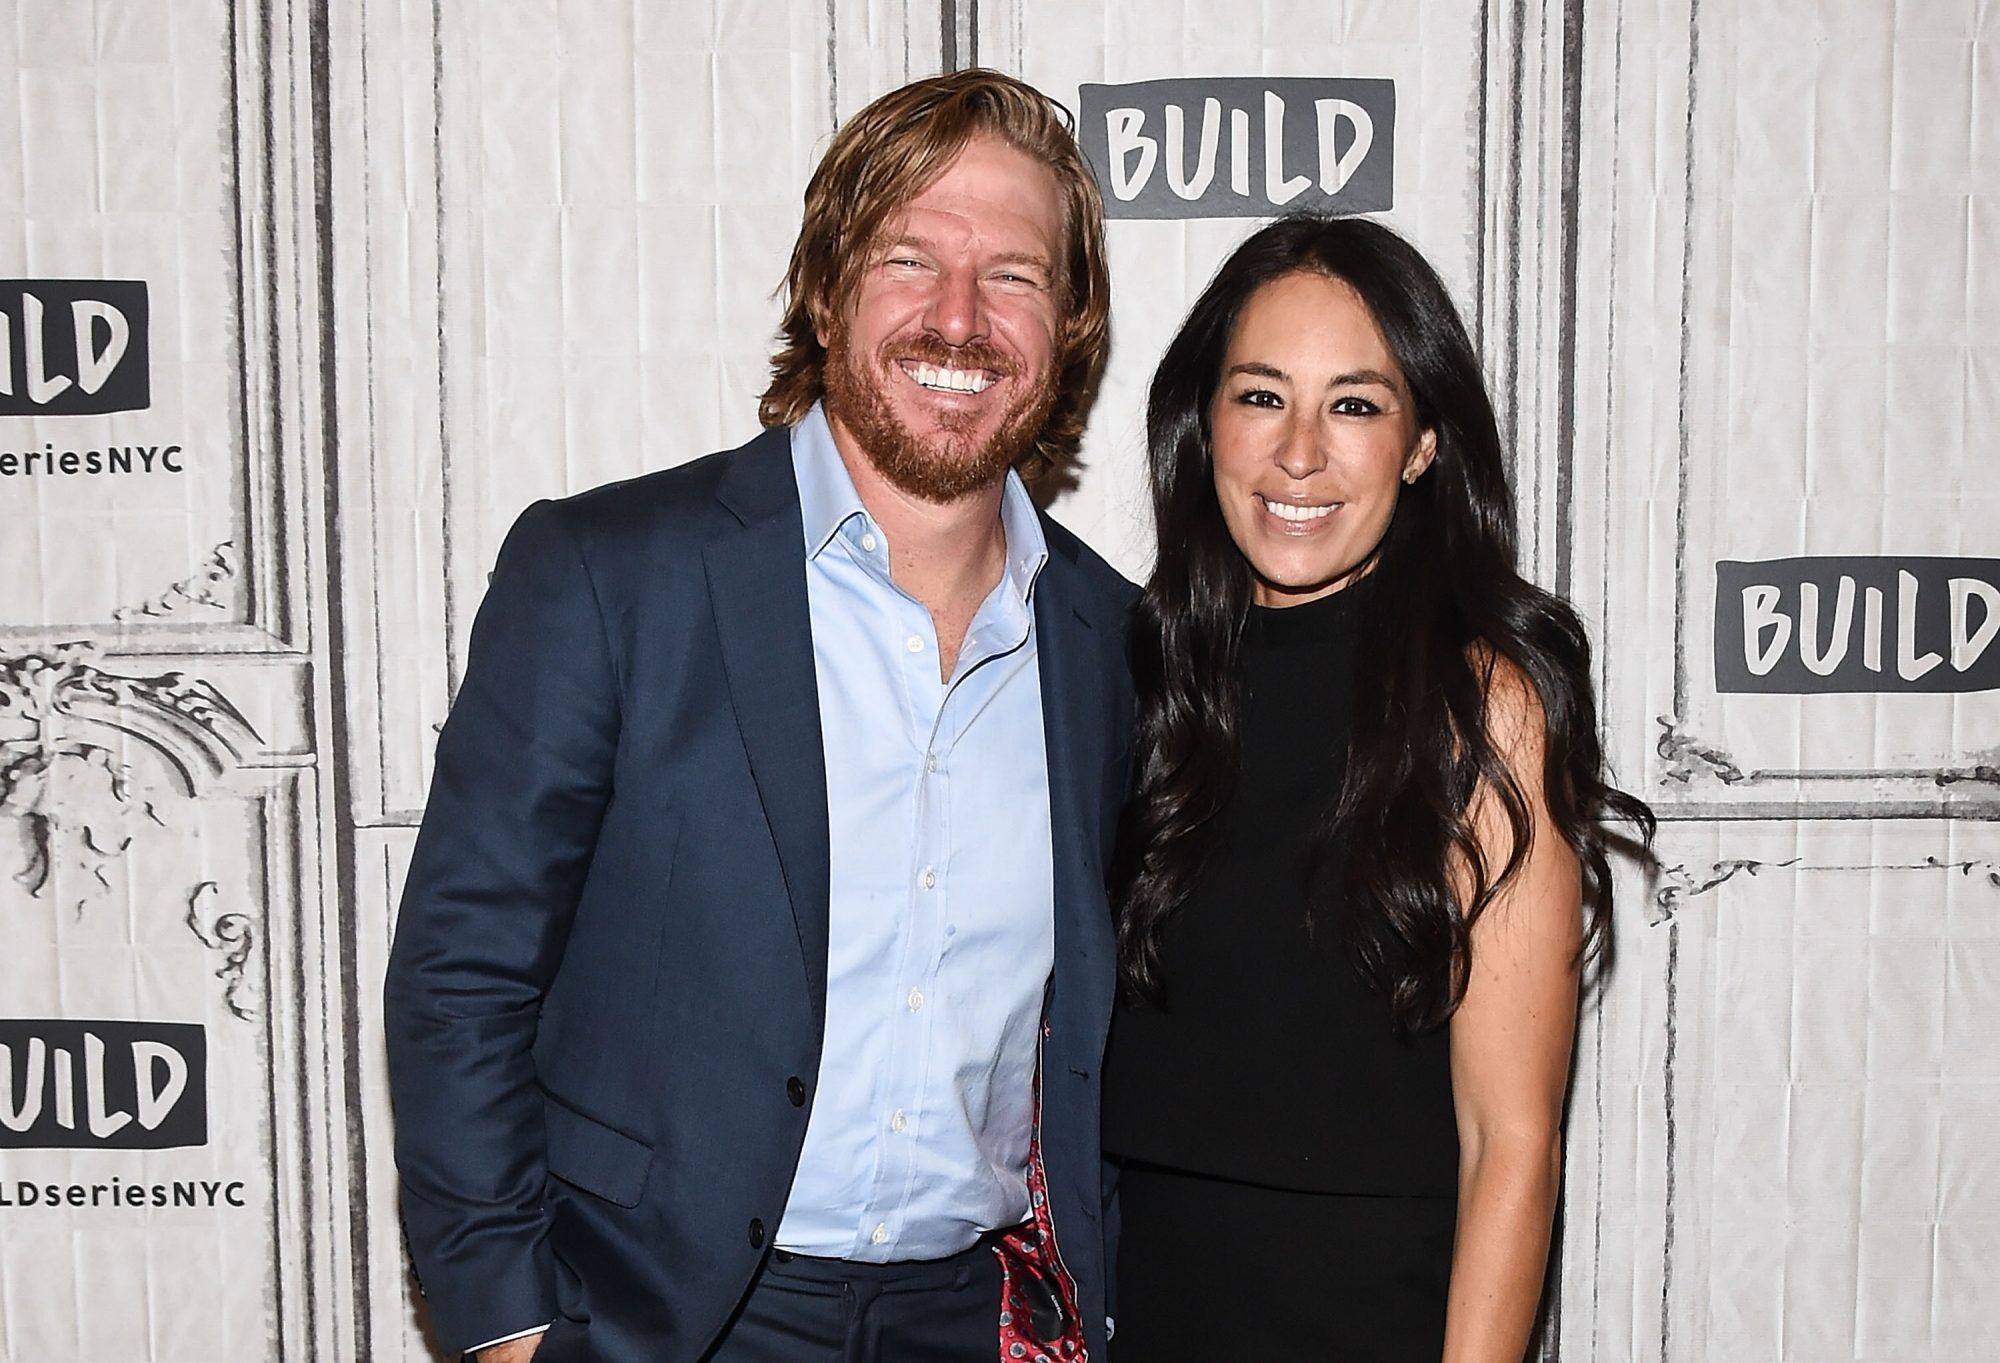 Chip and Joanna Gaines Fined $40,000 by the EPA forBreaking Lead Paint Rules During Fixer Upper